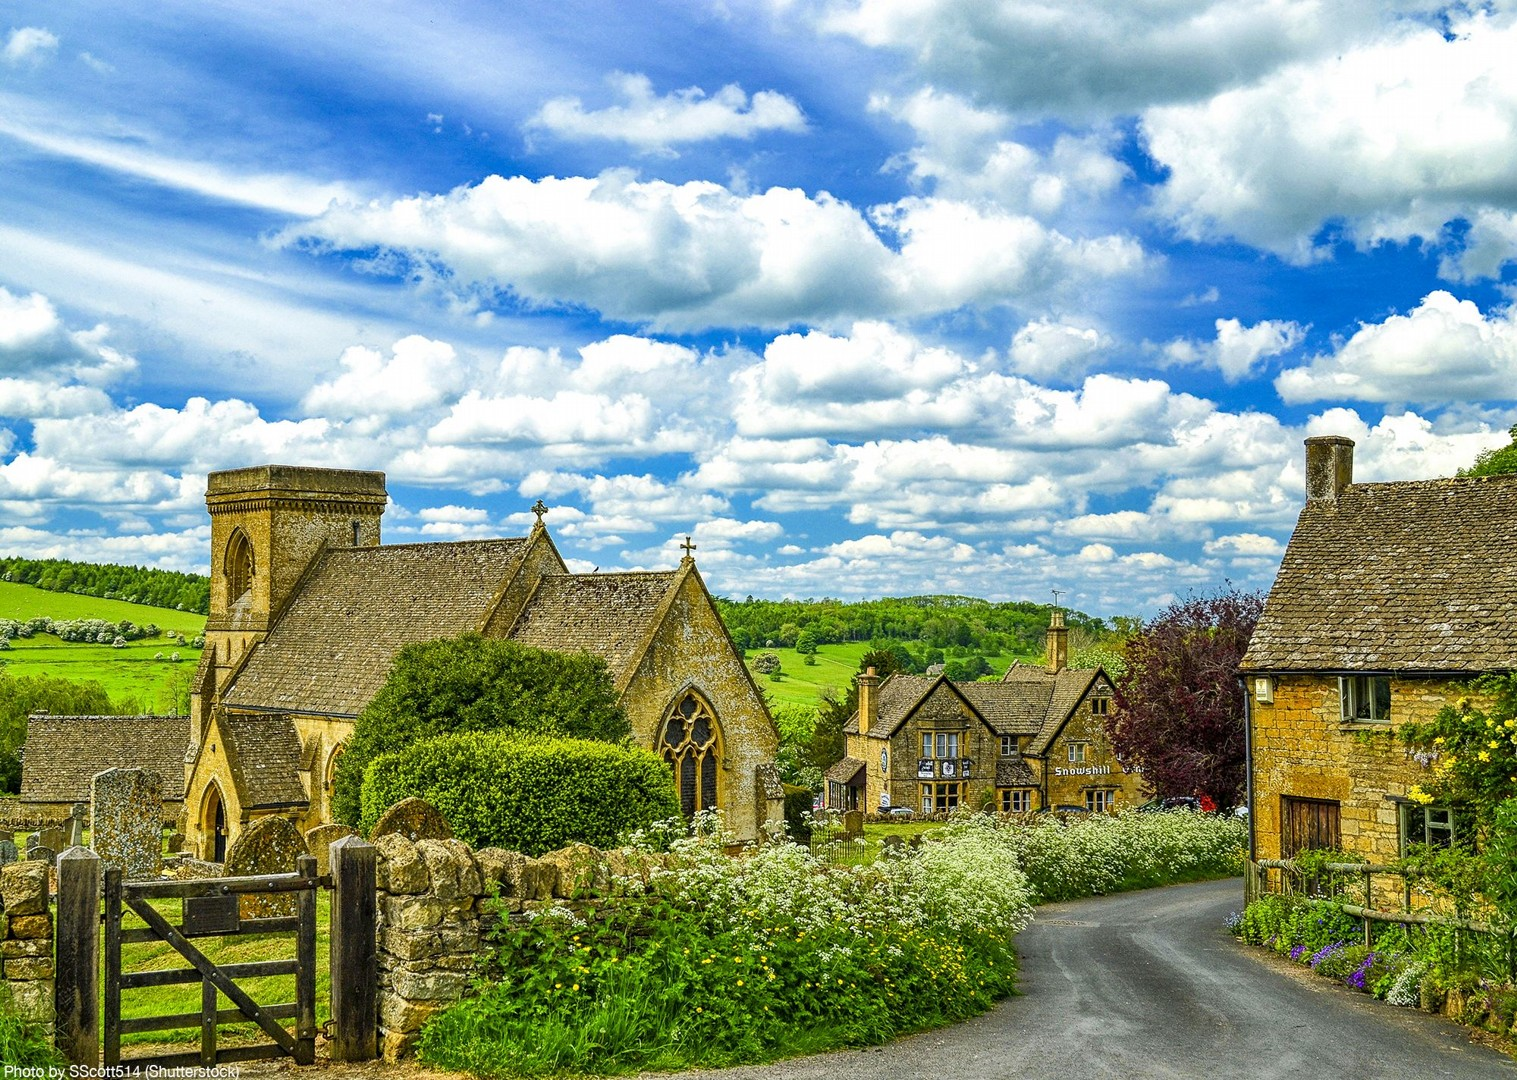 stow-on-the-wold-village-guided-cycling-bibury-leisure-bike-holiday.jpg - UK - Cotswolds - Bourton-on-the-Water - Guided Leisure Cycling Holiday - Leisure Cycling